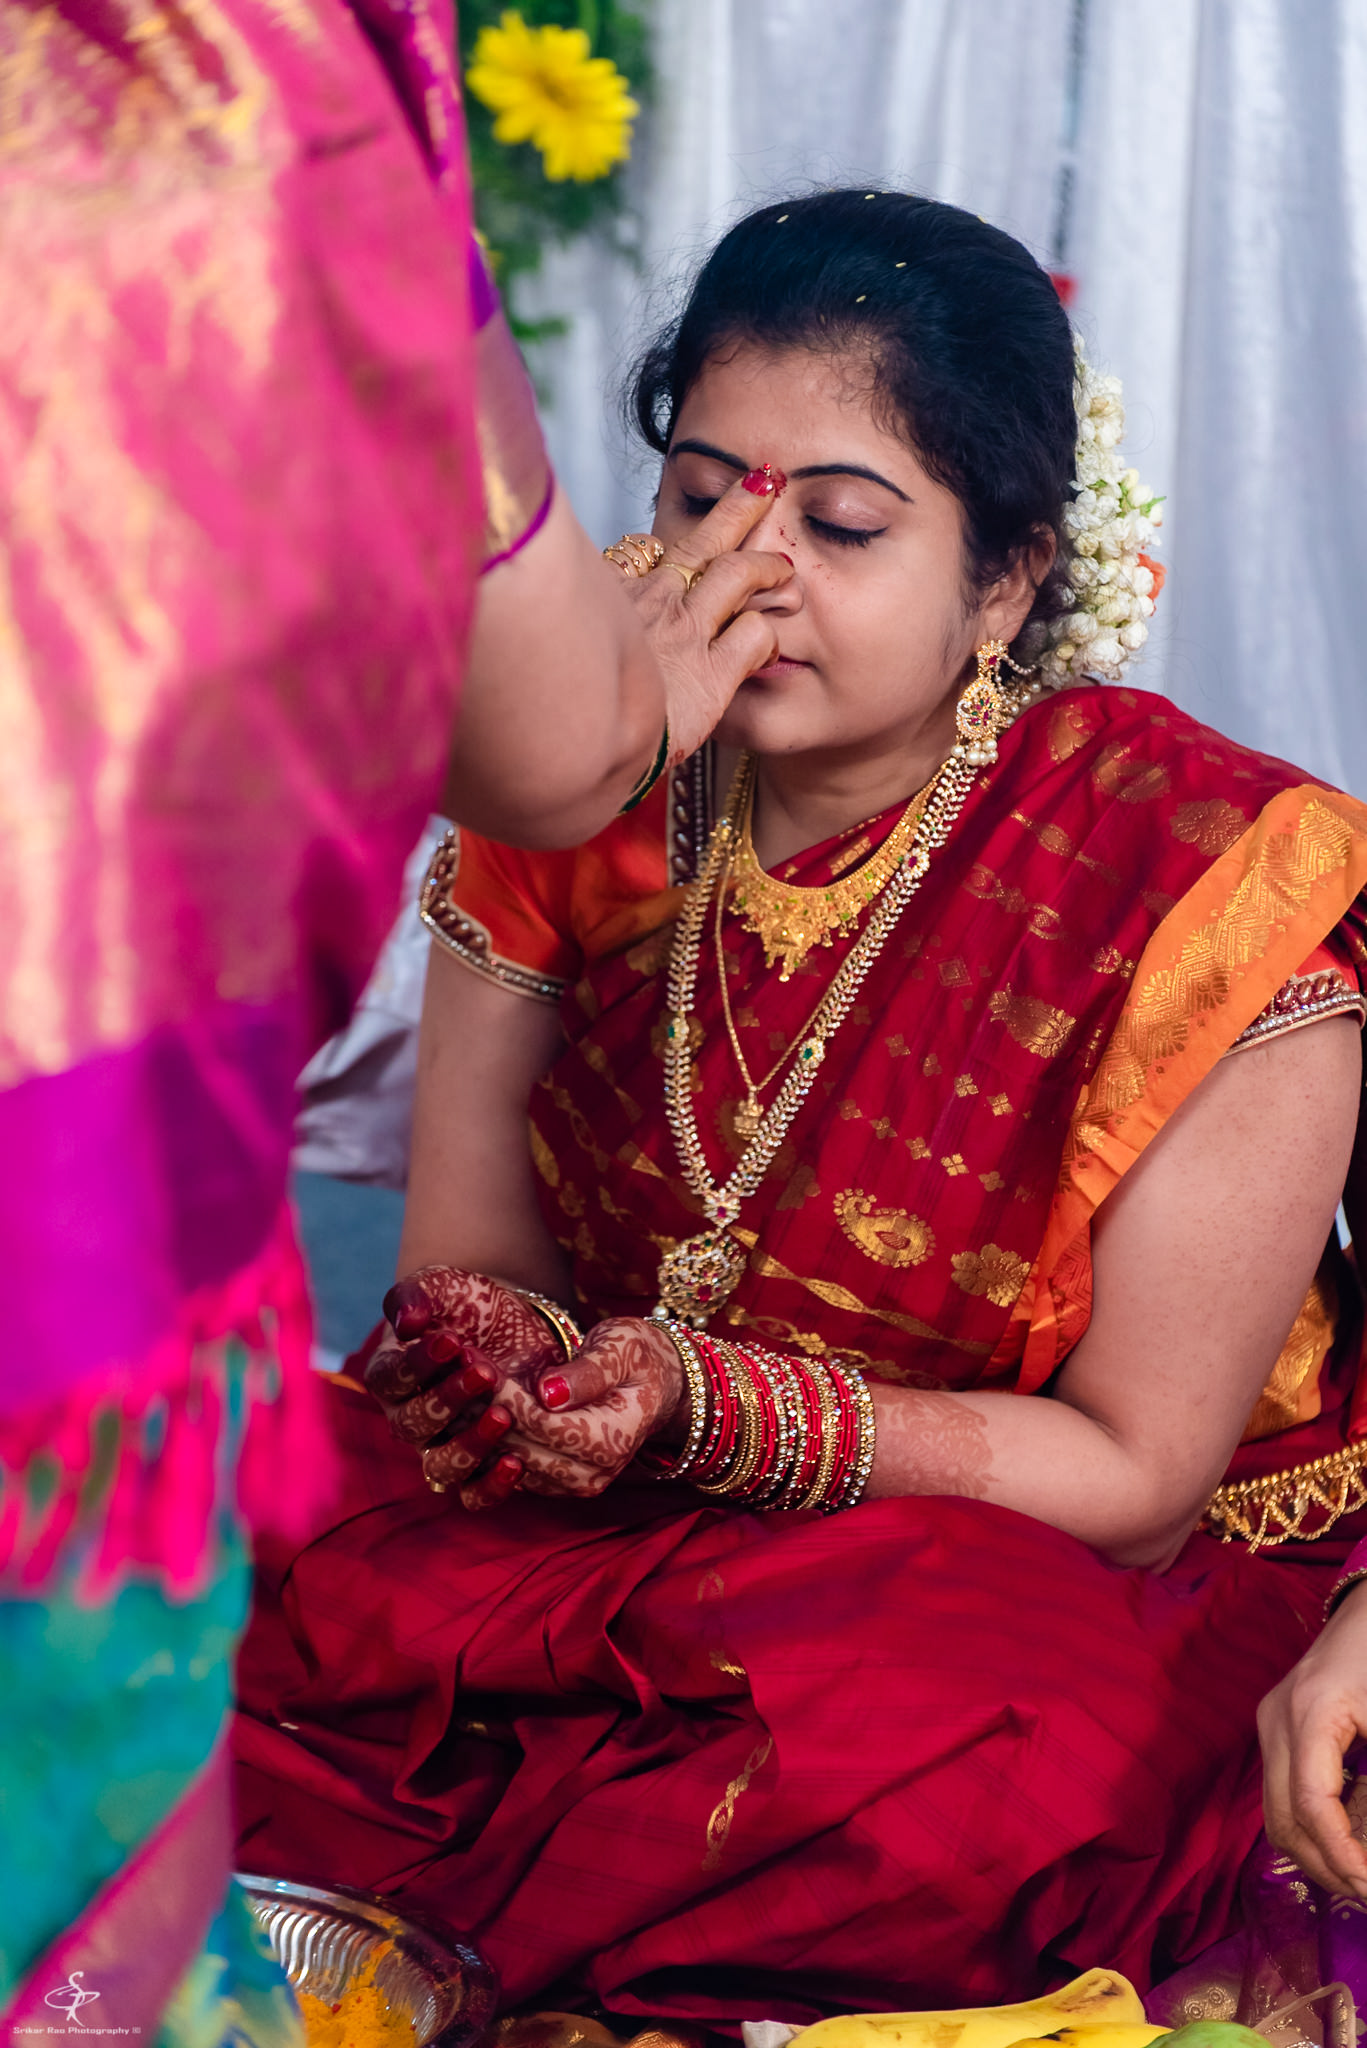 online-home-zoom-hyderabad-ringceremony-photographer--22